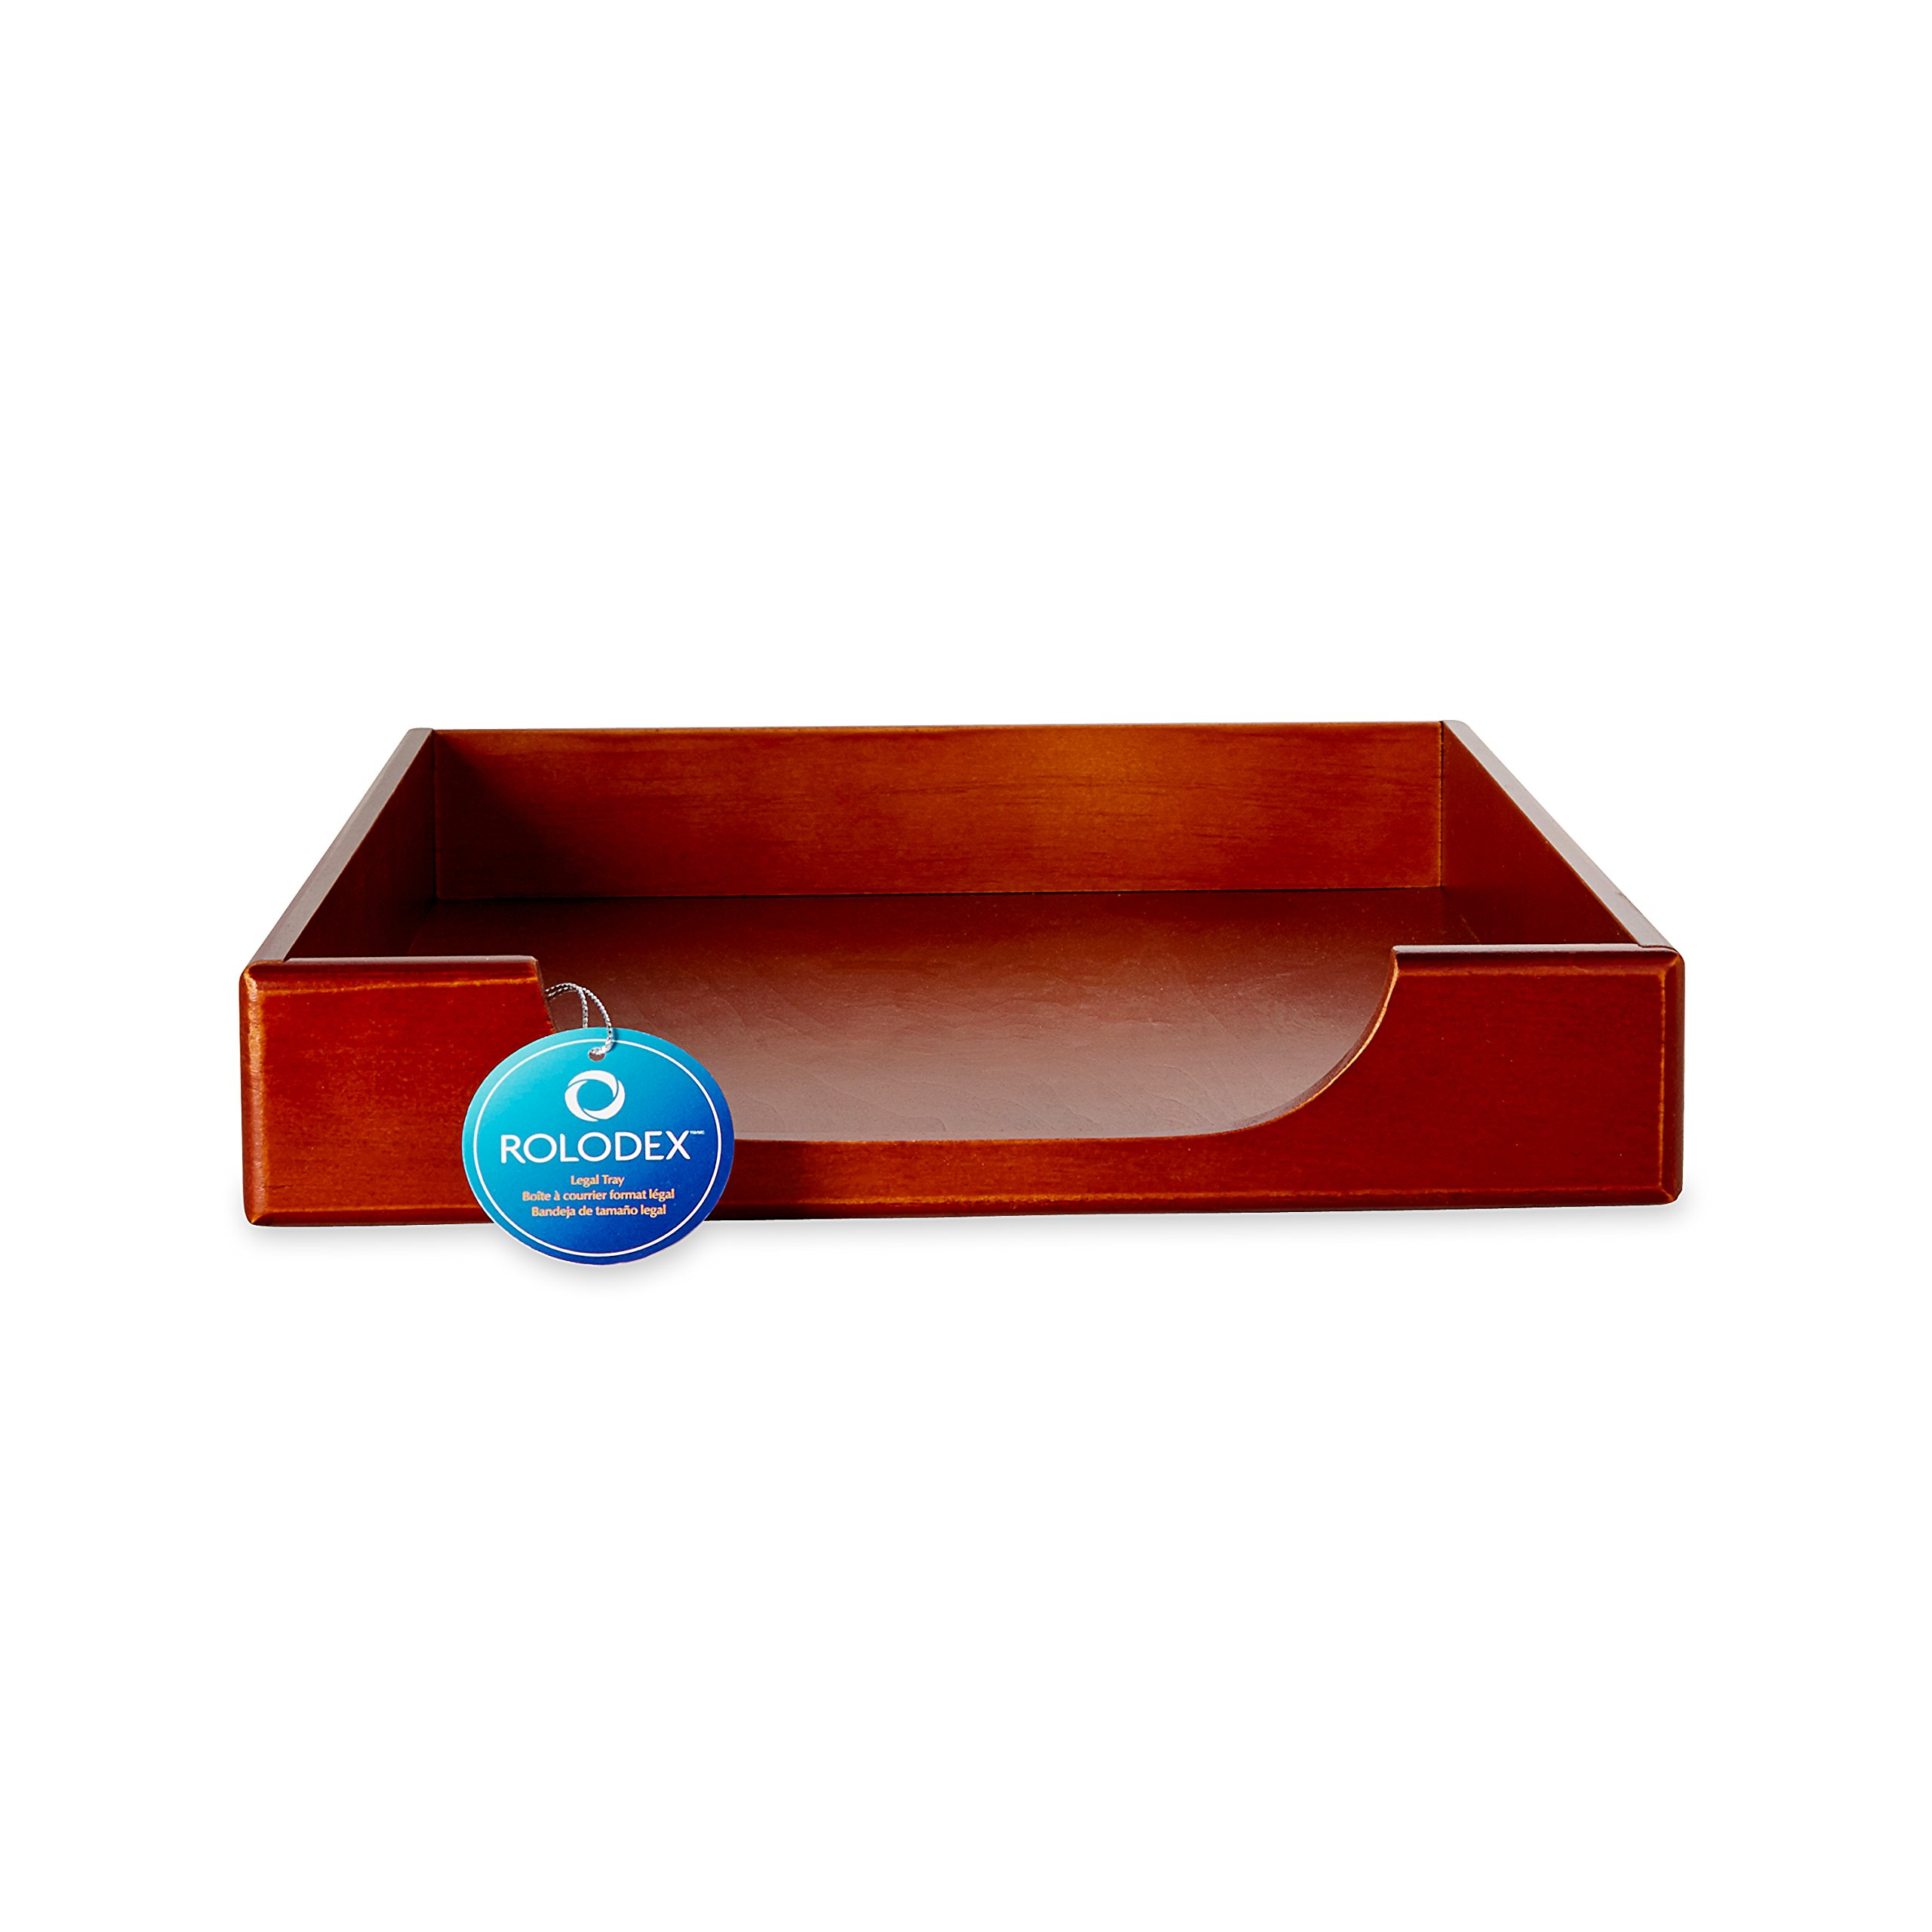 Rolodex Wood Tones Collection Desk Tray, Legal-Size, Mahogany (23360) by Rolodex (Image #3)